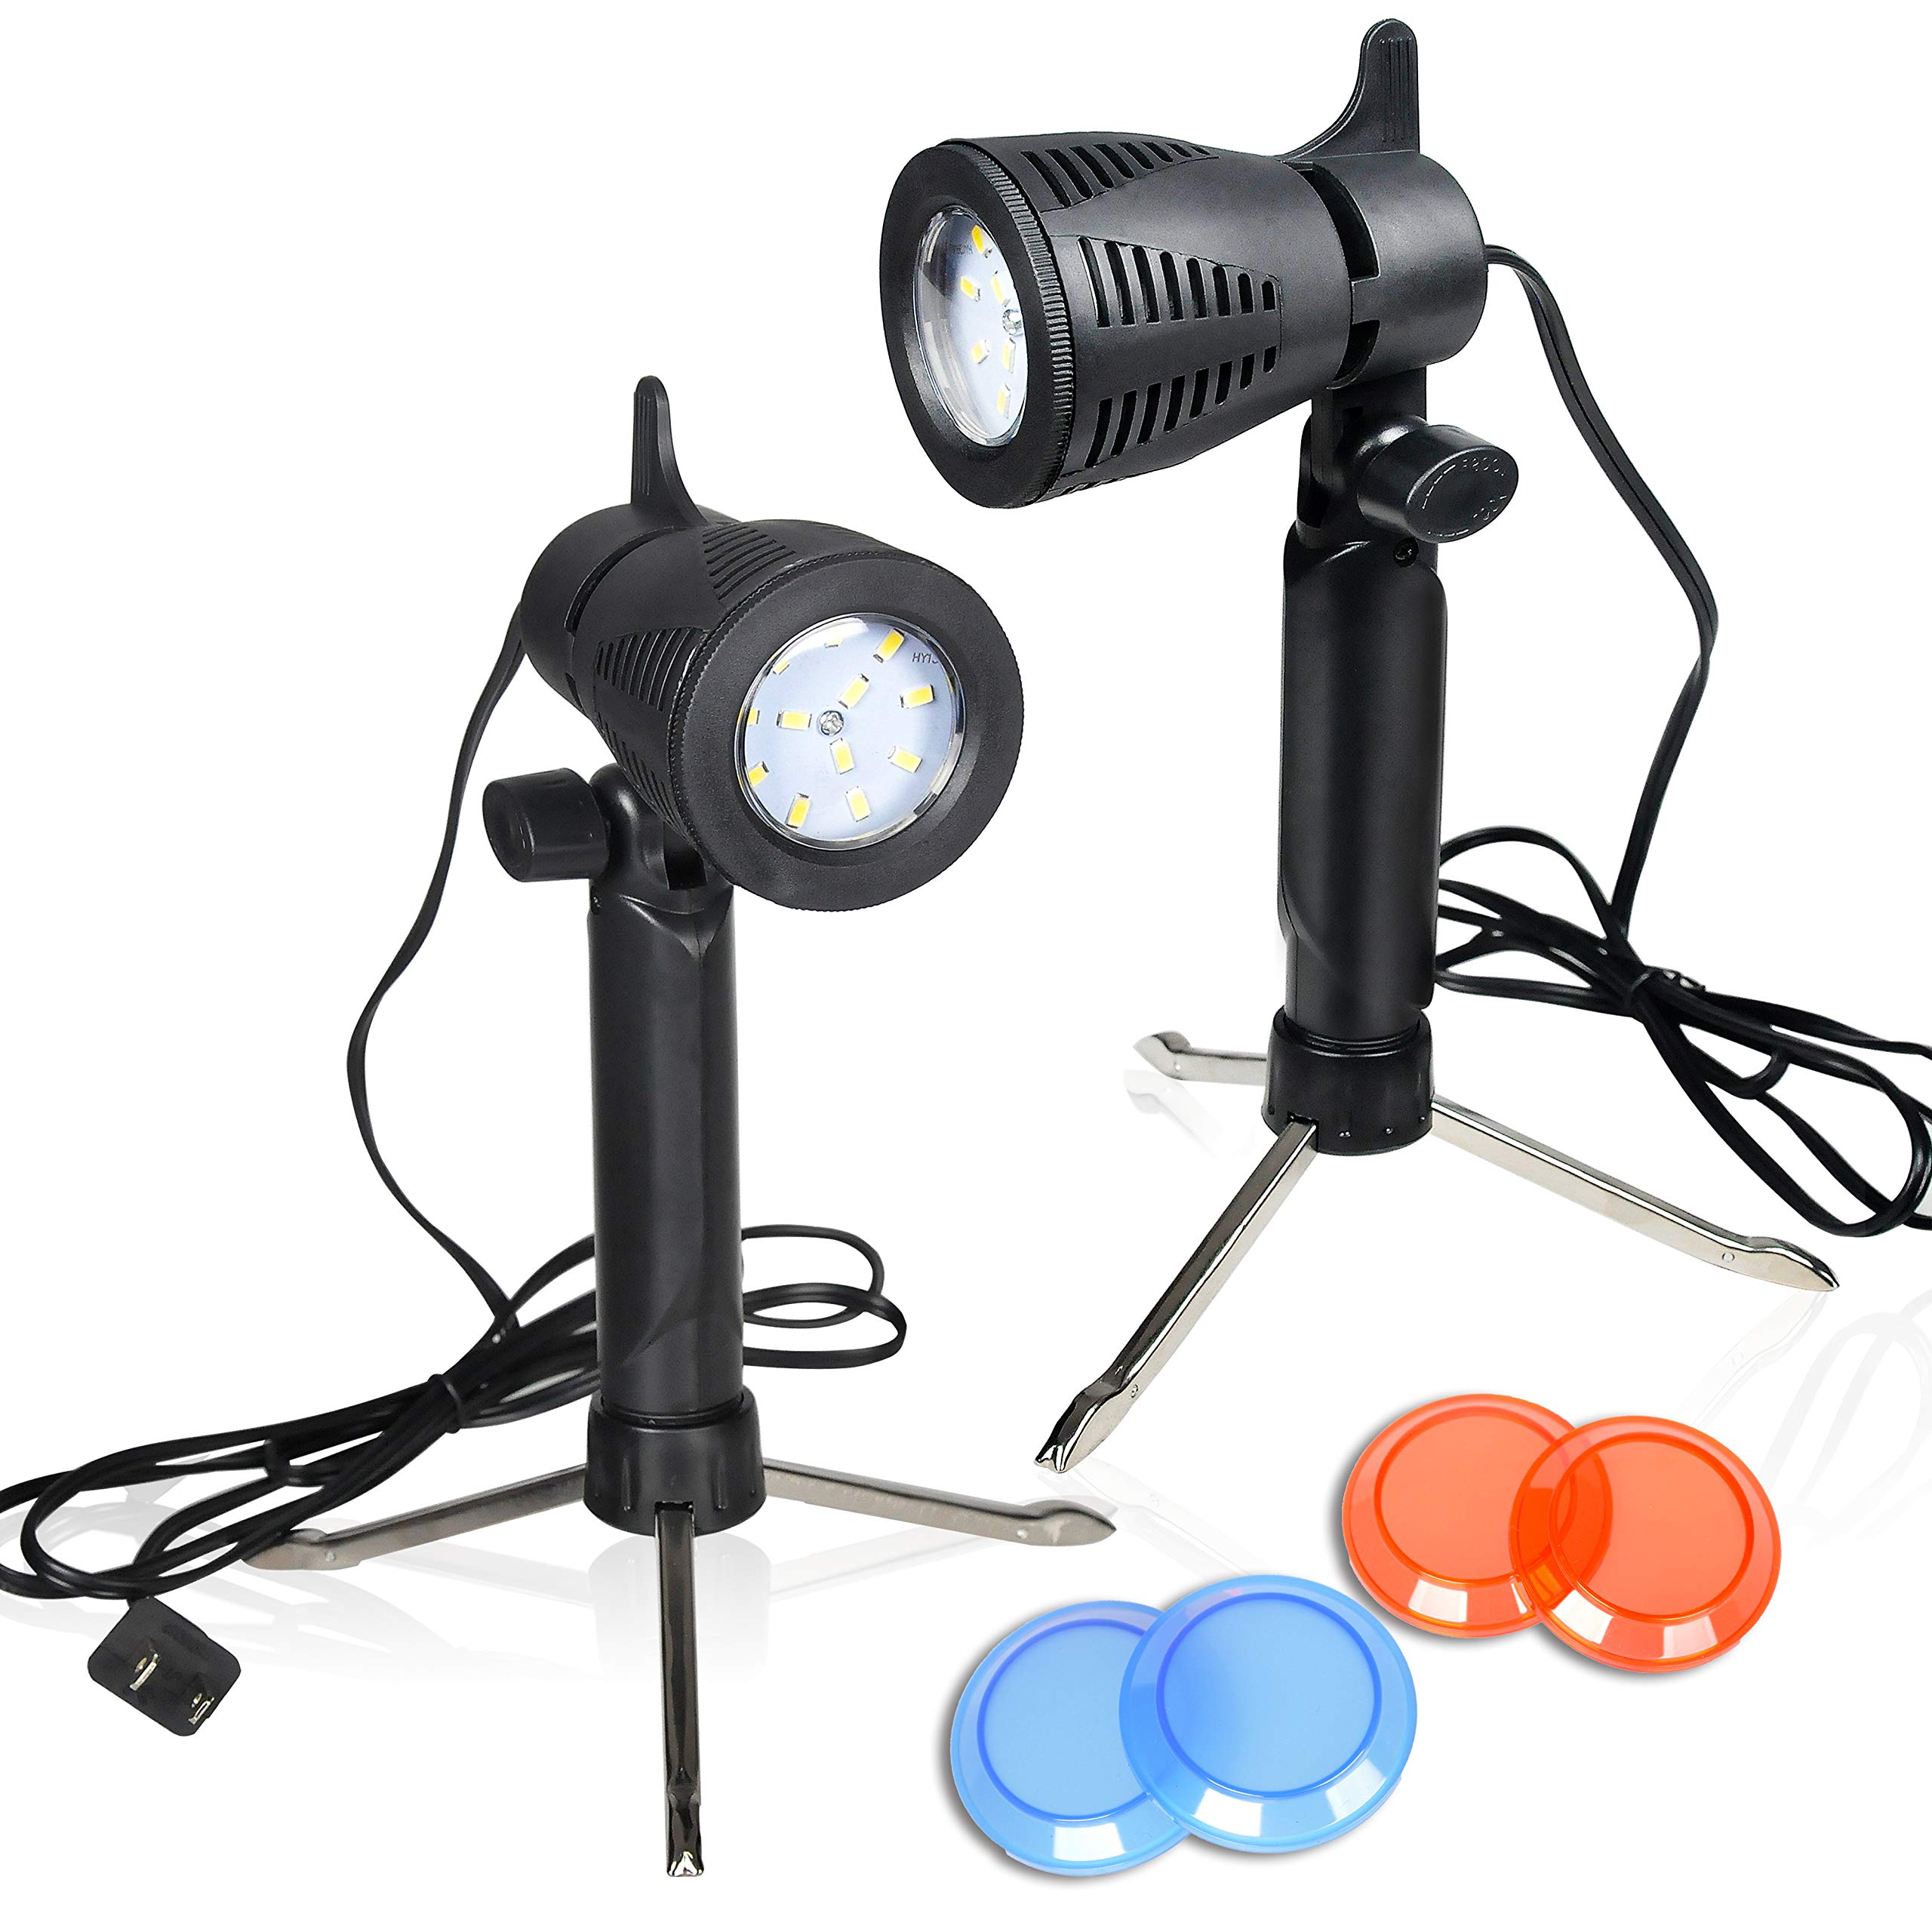 Emart Photography LED Continuous Light Lamp 5500K Portable Camera Photo Lighting for Table Top Studio - 2 Sets by EMART